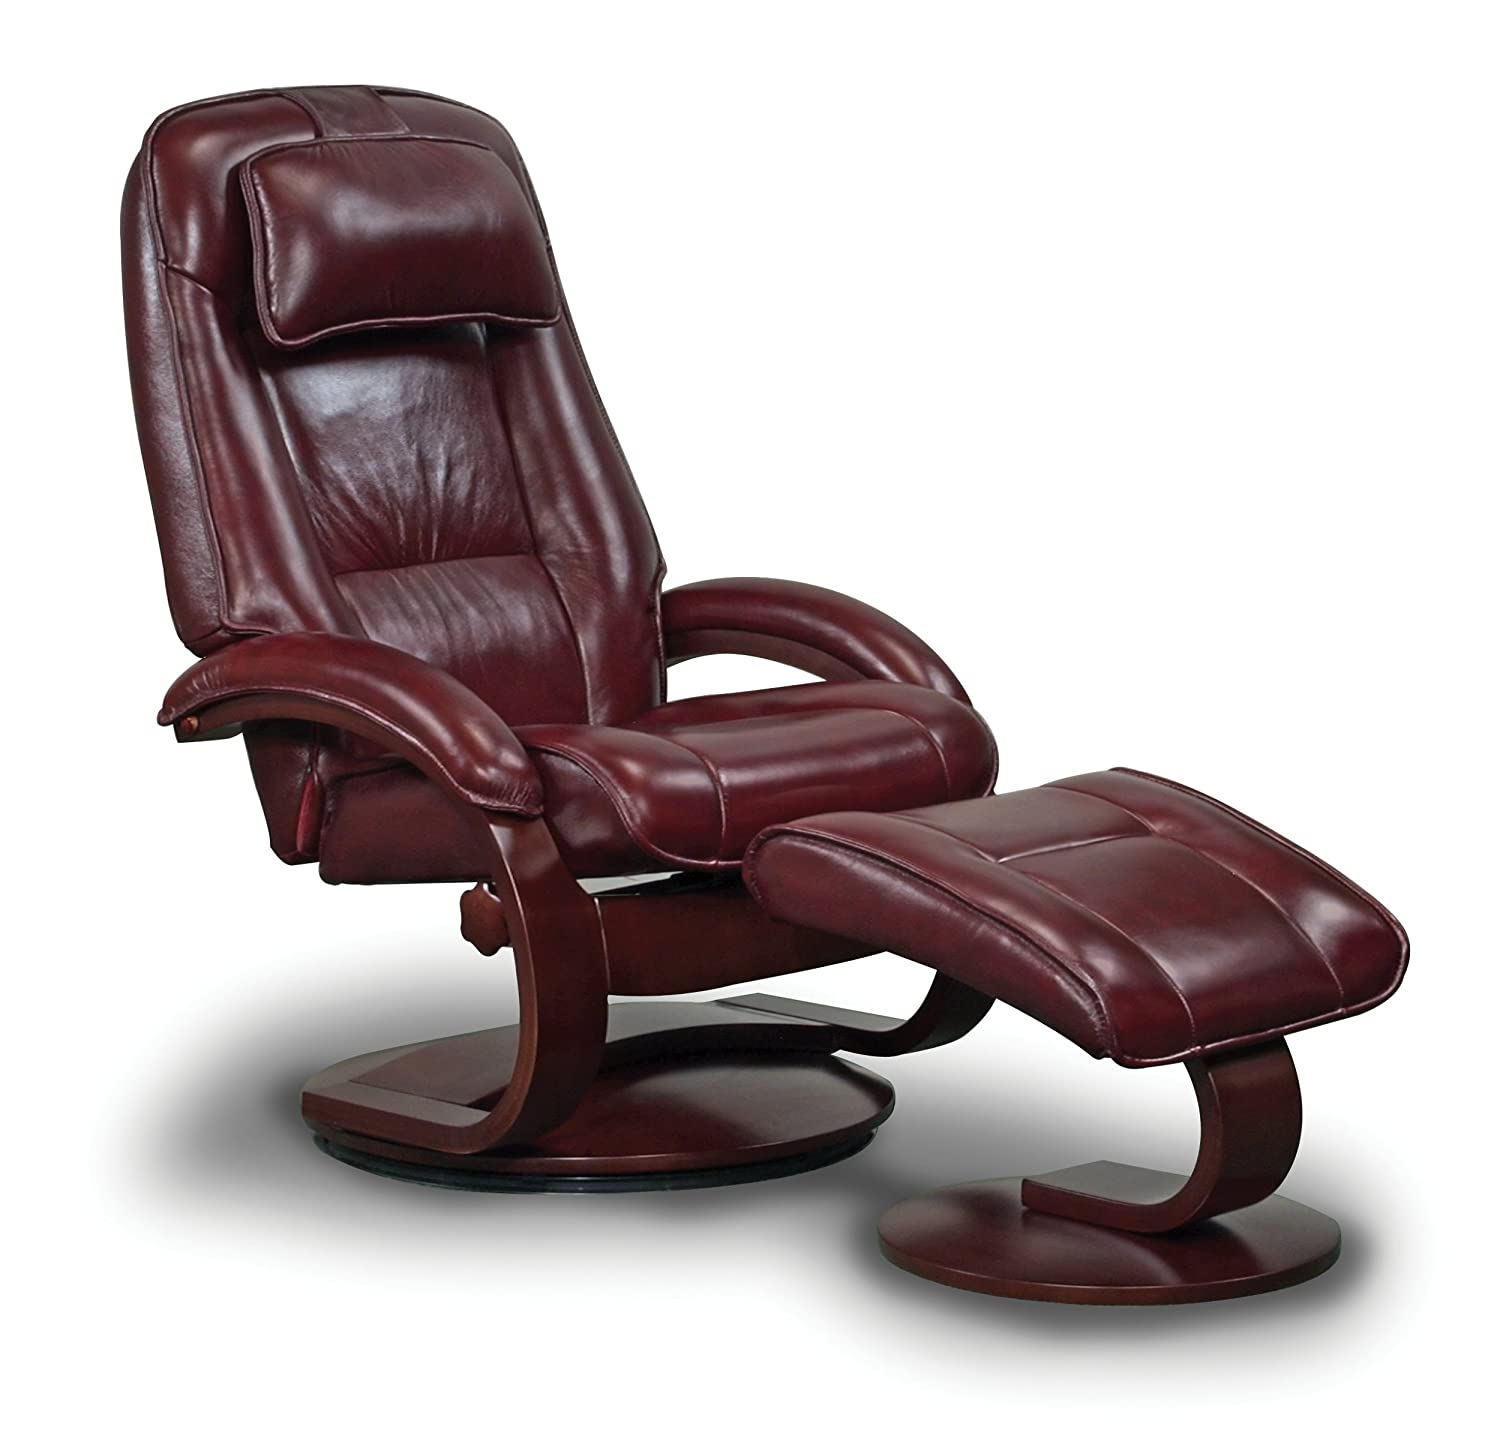 recliner with matching ottoman check price